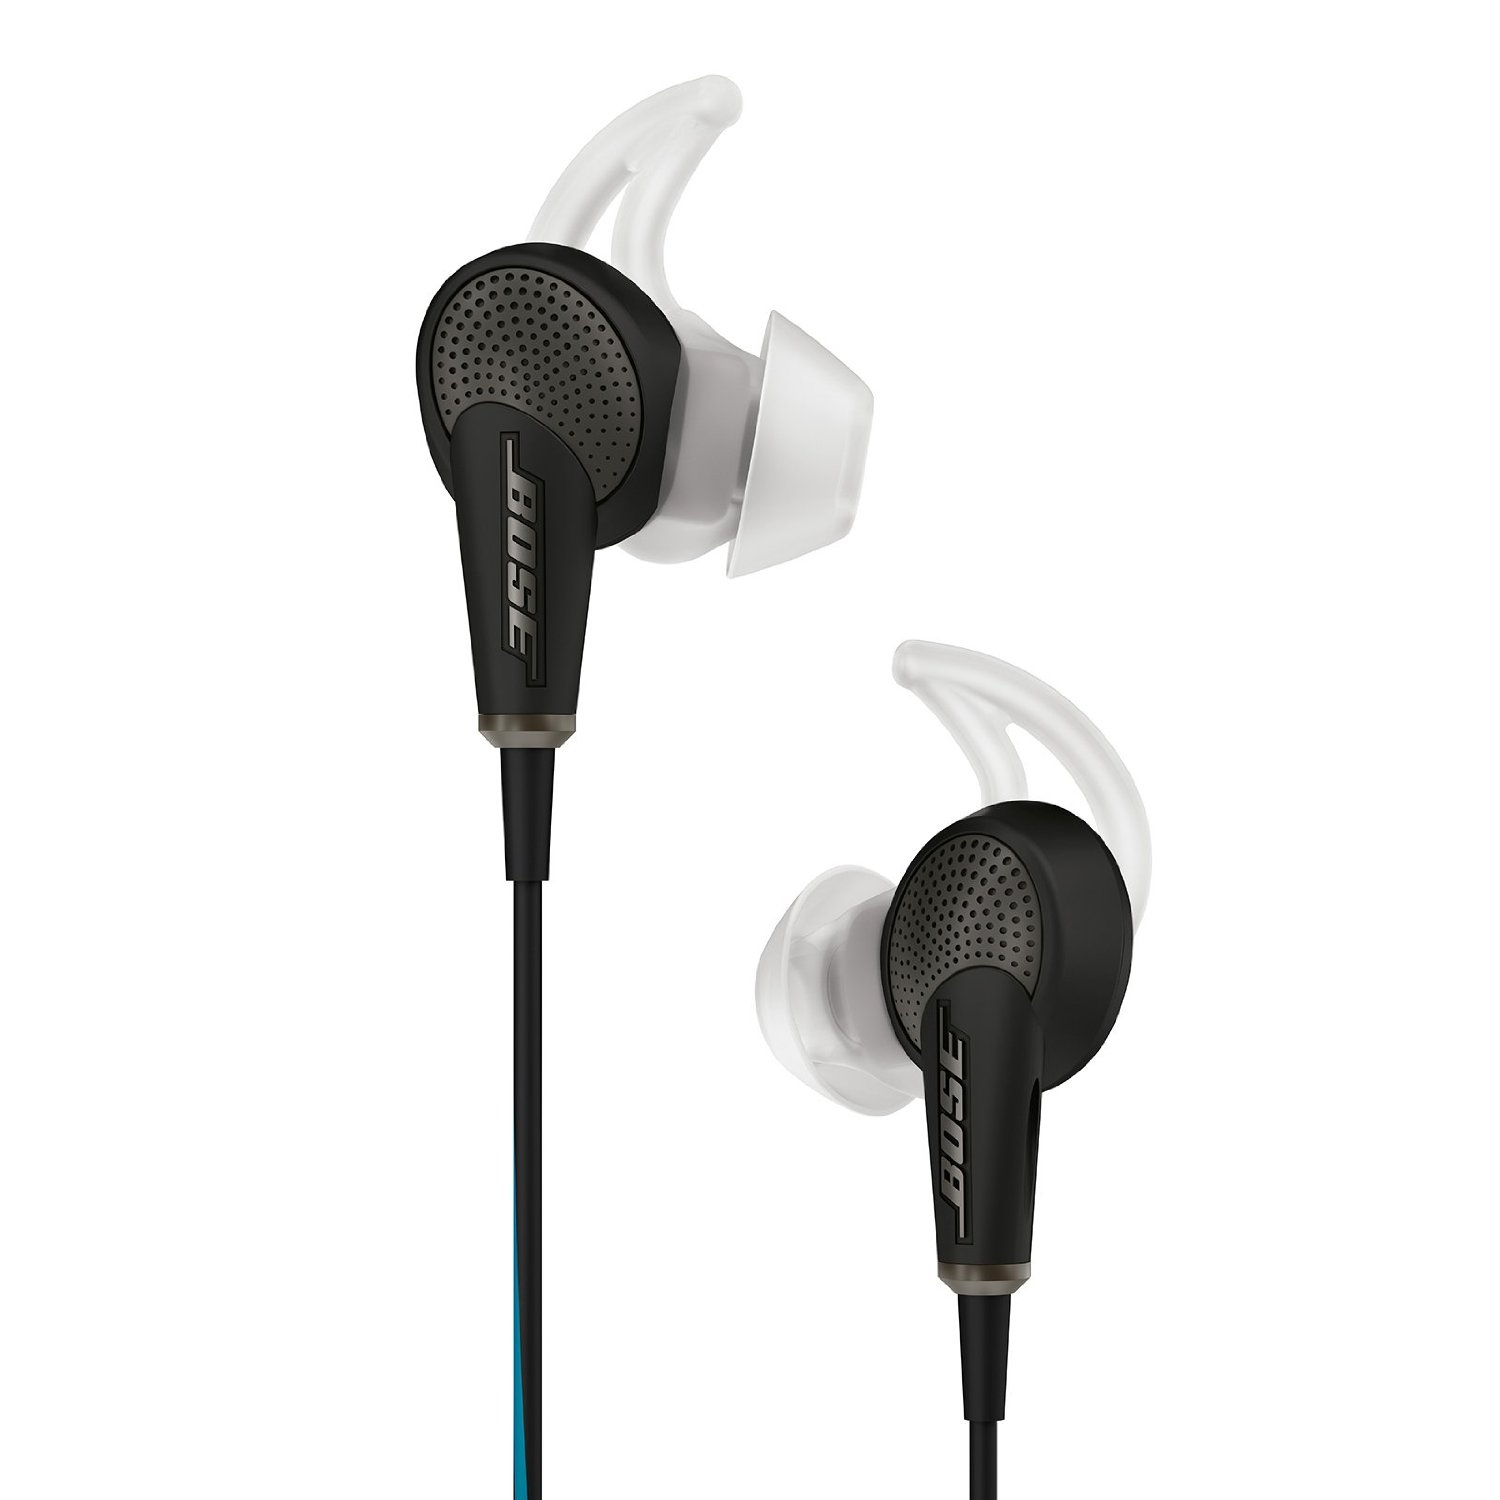 Bose QuietComfort headphone - £249.99